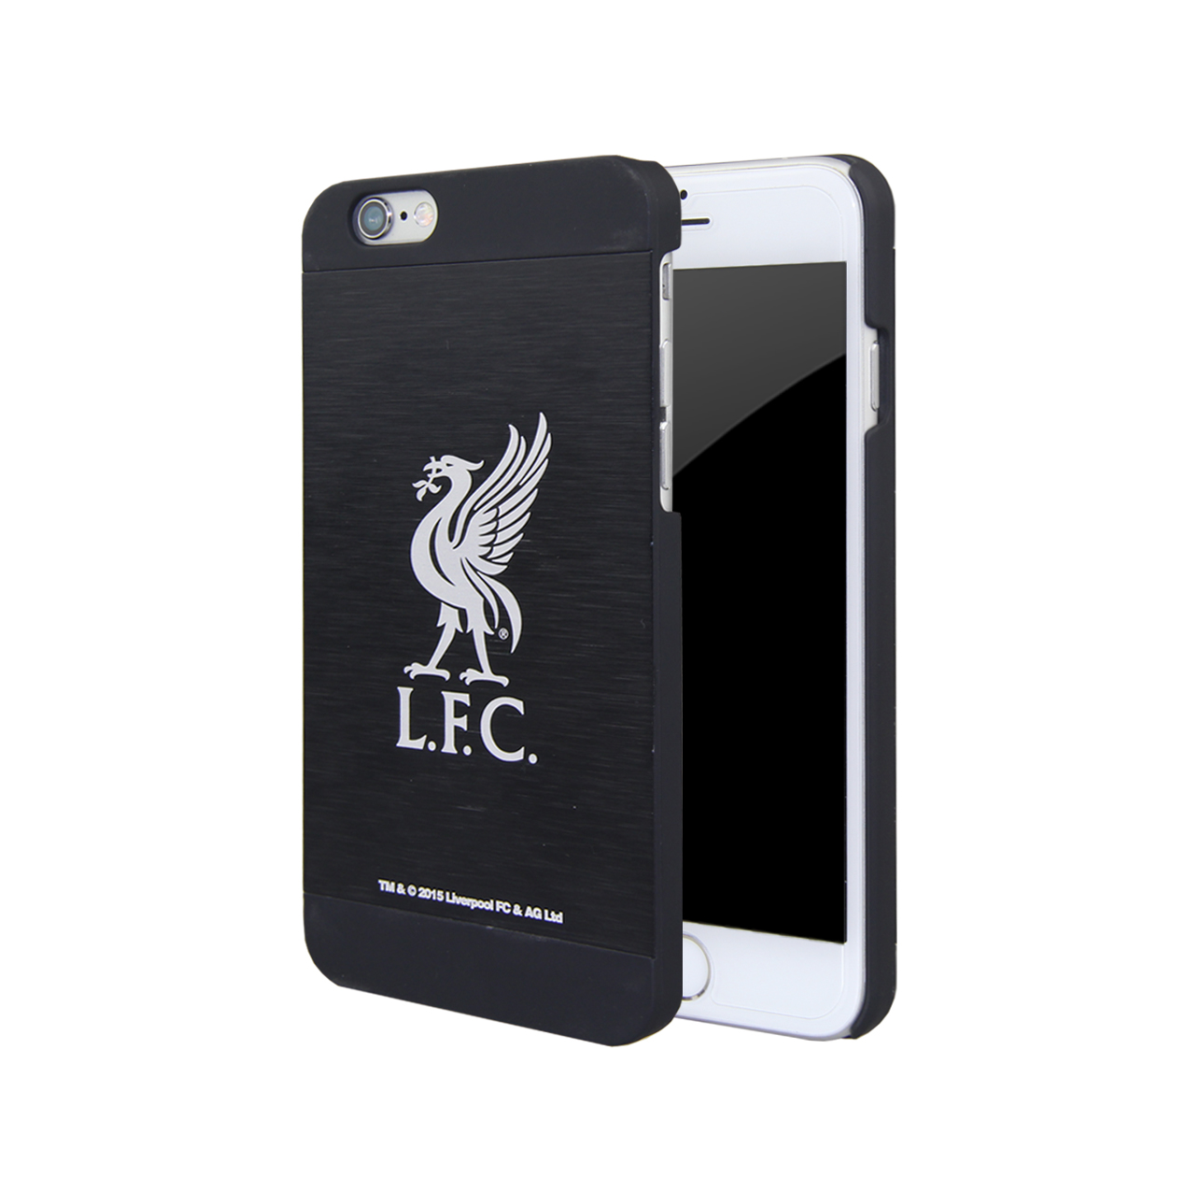 InToro Liverpool iPhone 6 Aluminium Case